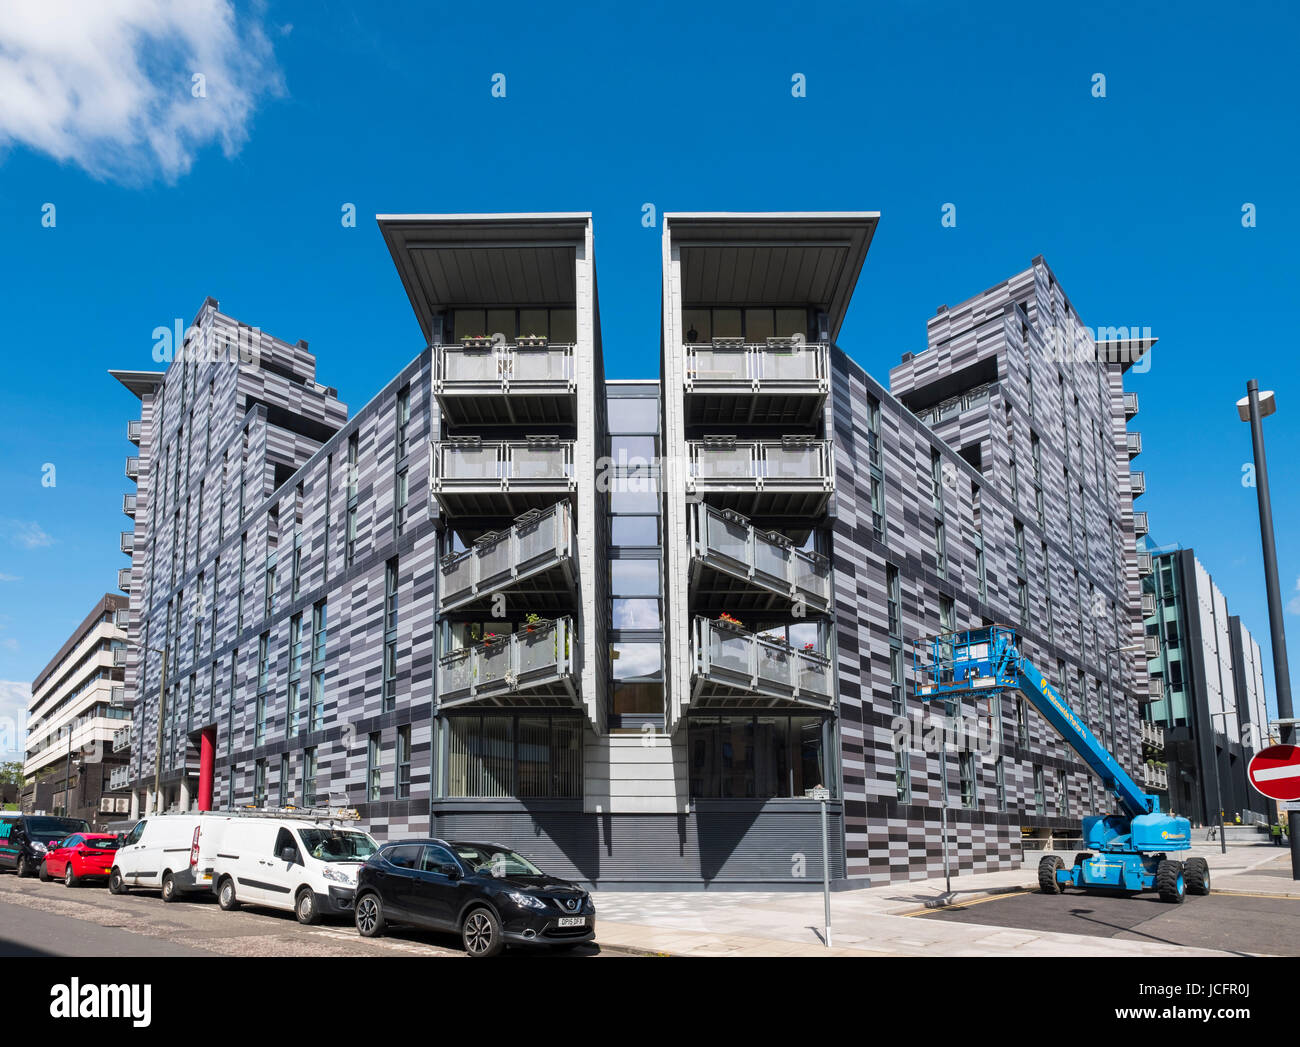 Exterior of Wharton Square new affordable housing in Edinburgh, Scotland, United Kingdom. - Stock Image